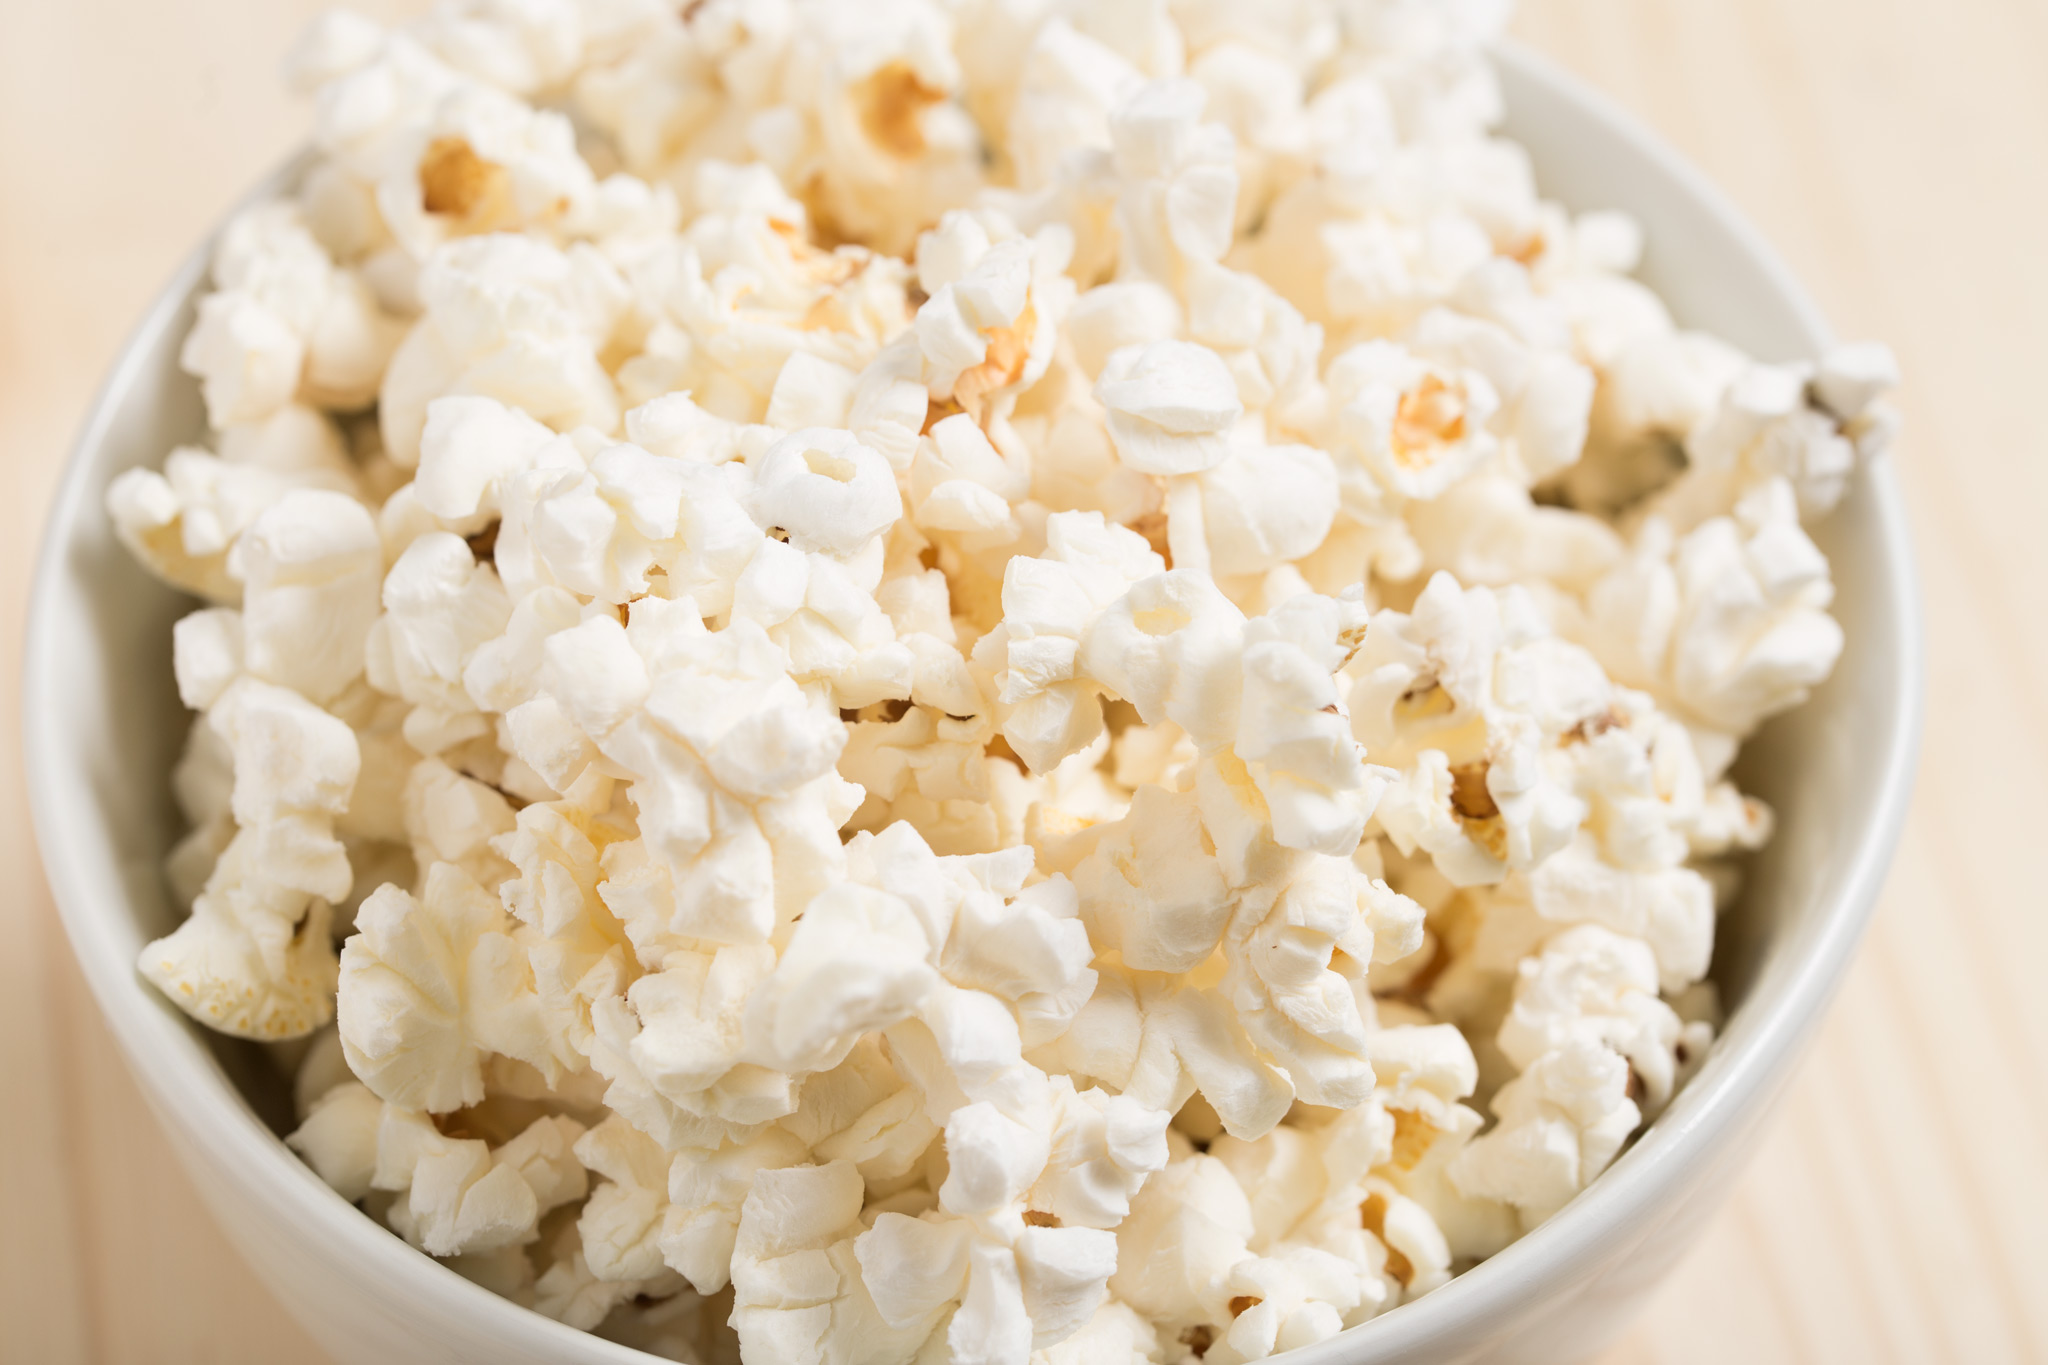 Bowl of unbuttered popped popcorn kernels